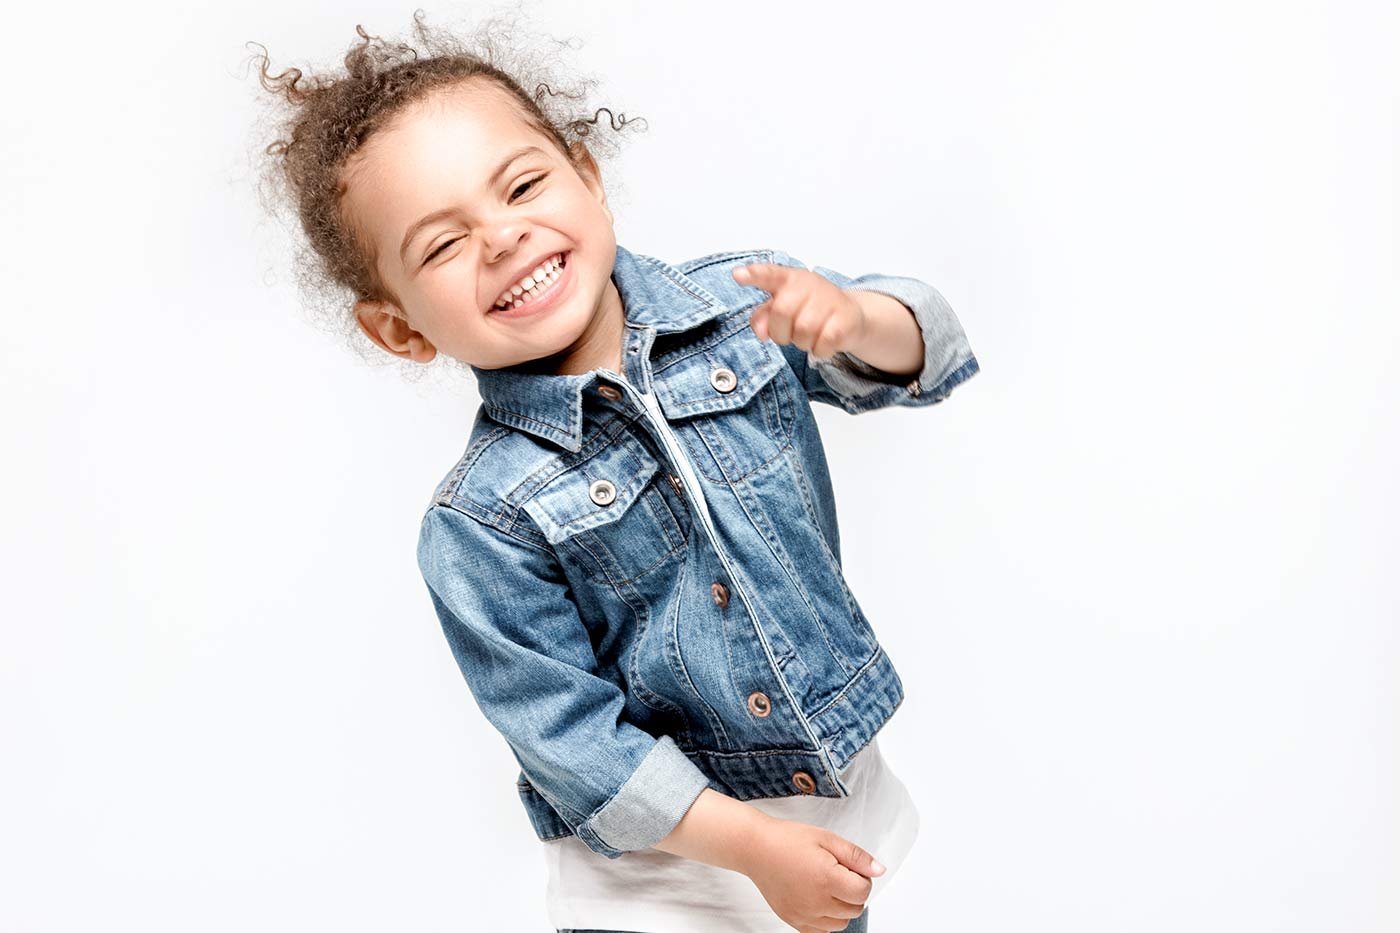 Funny little girl smiling and dancing